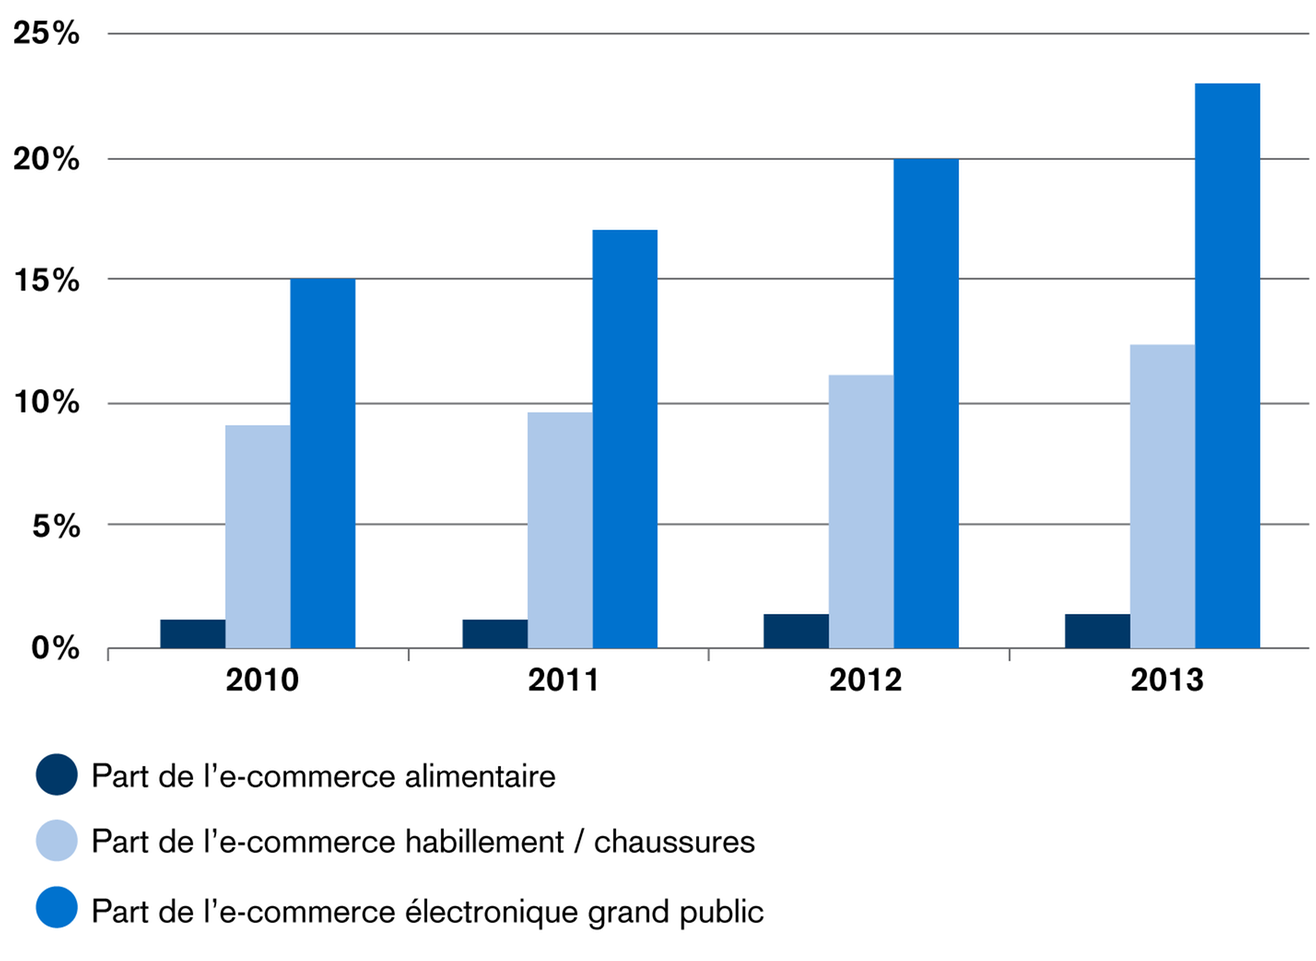 Part de l'e-commerce par segment